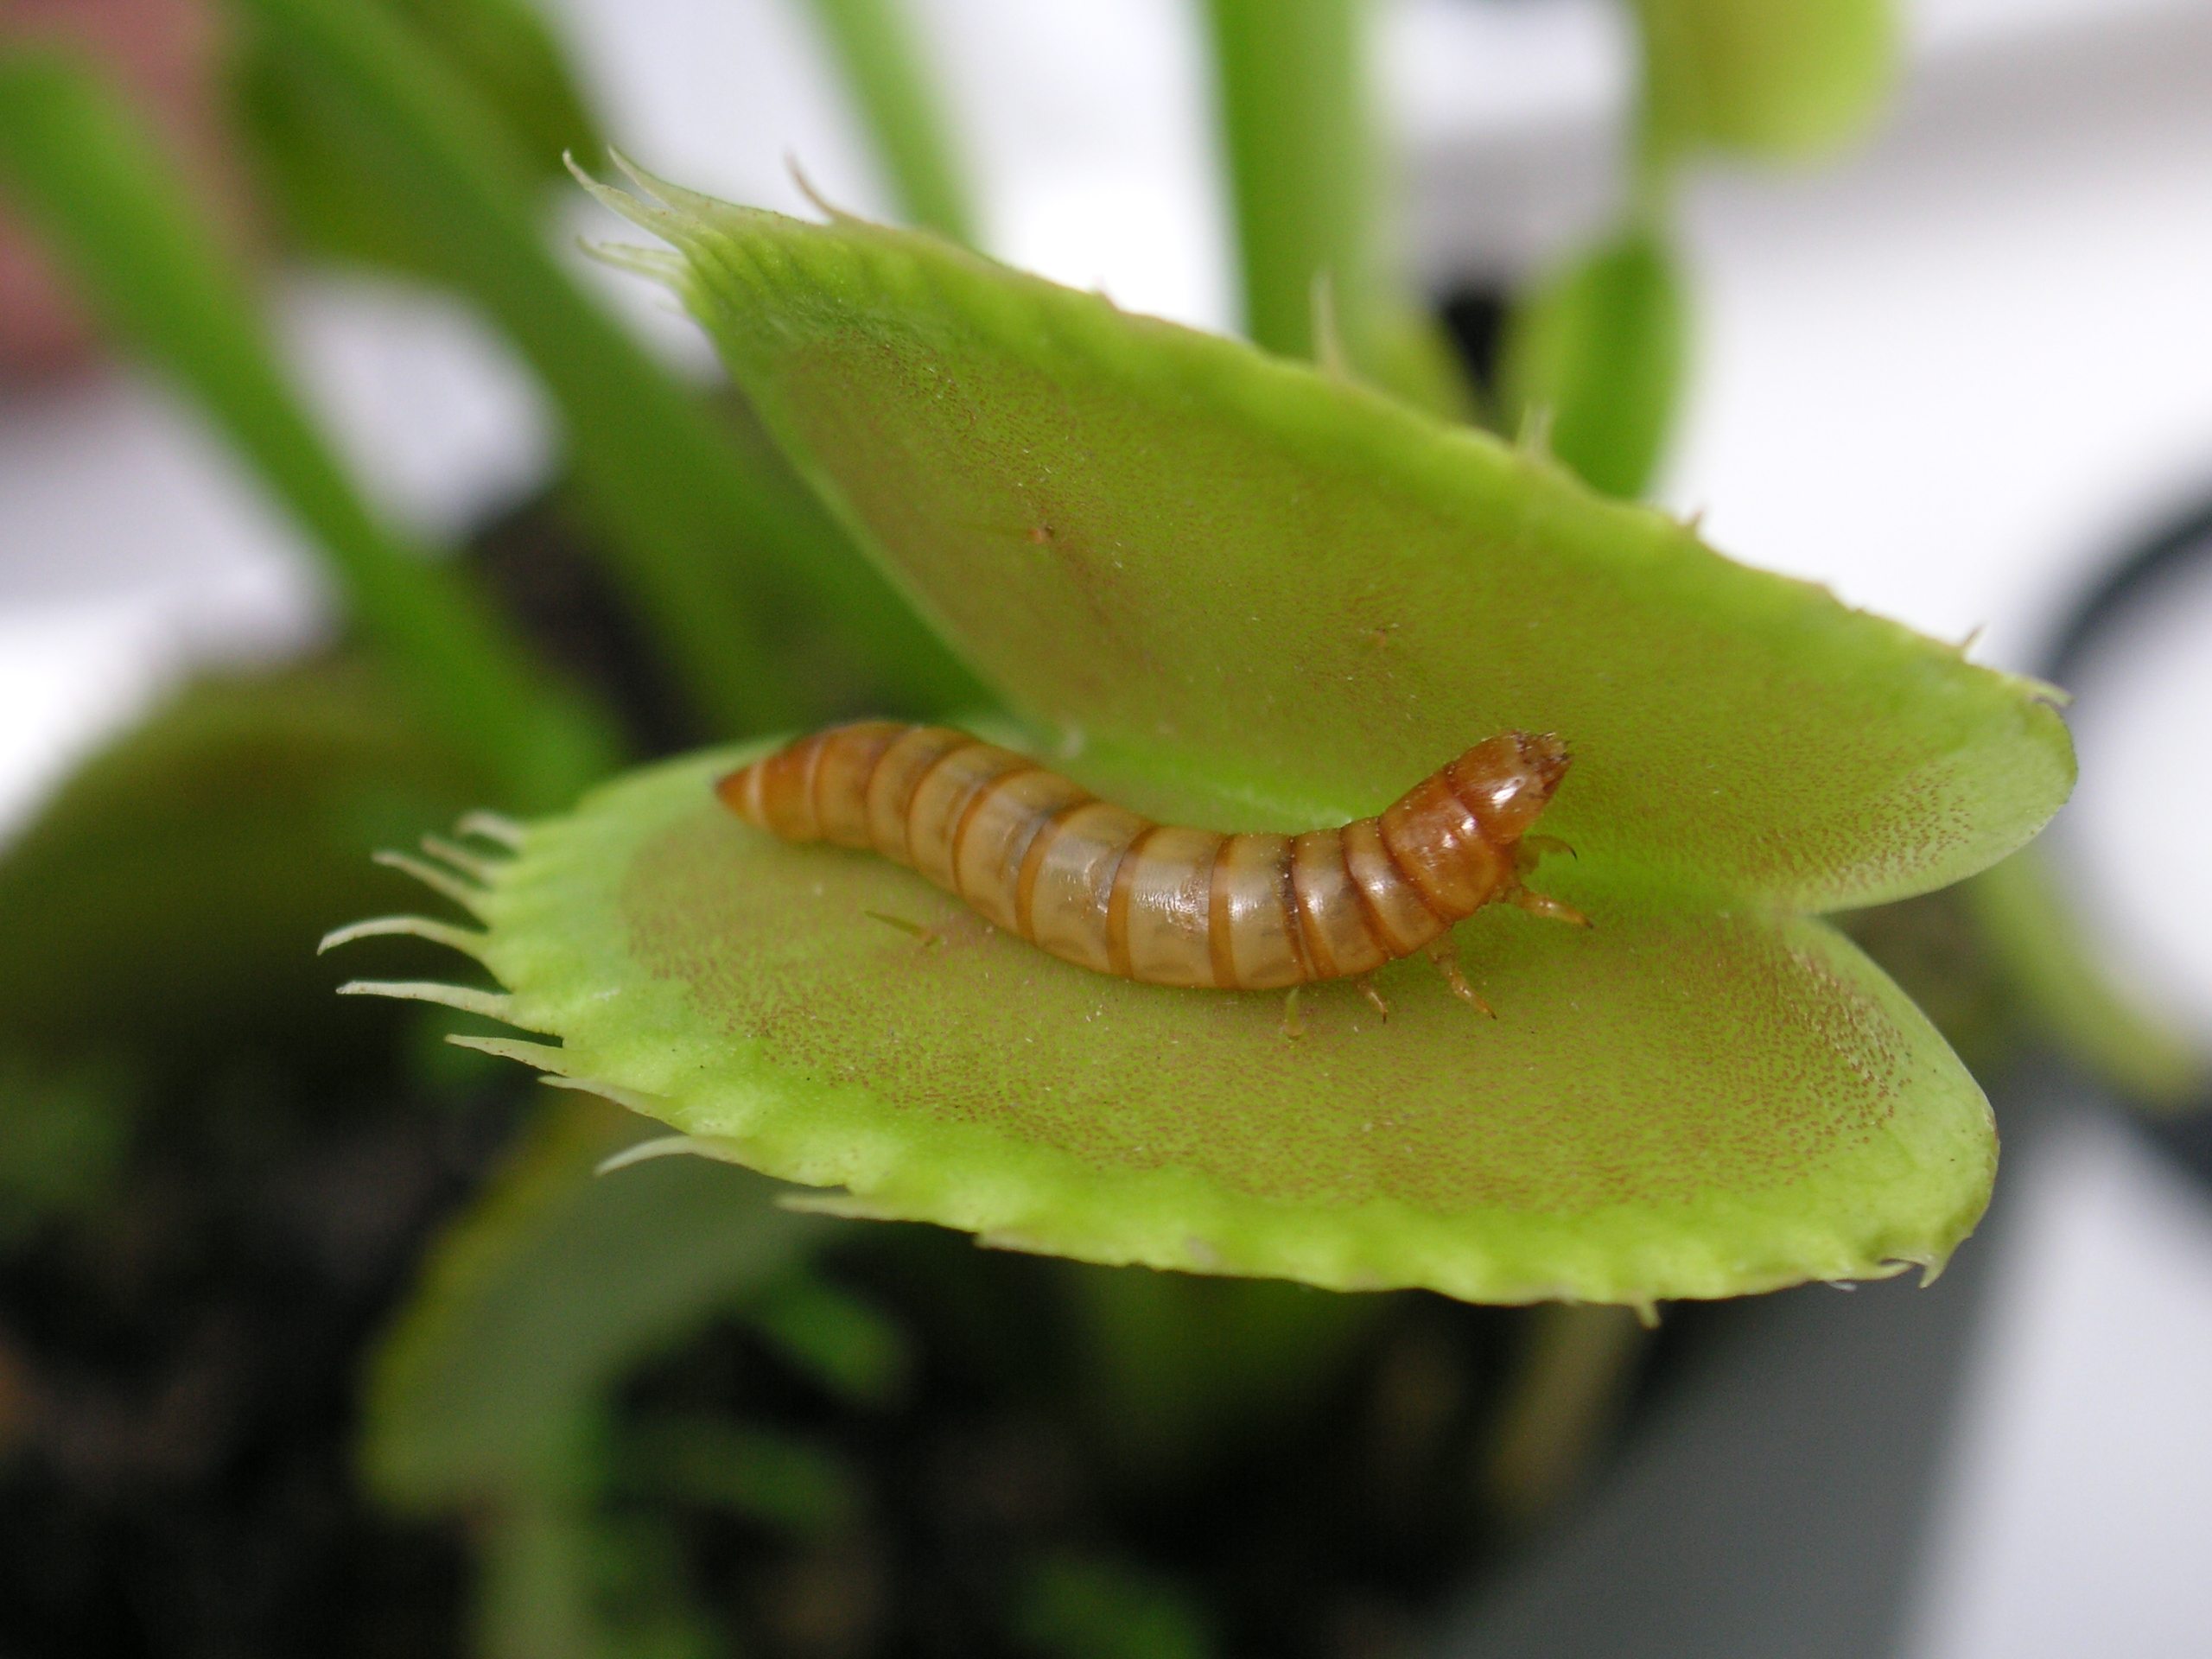 picture of a mealworm